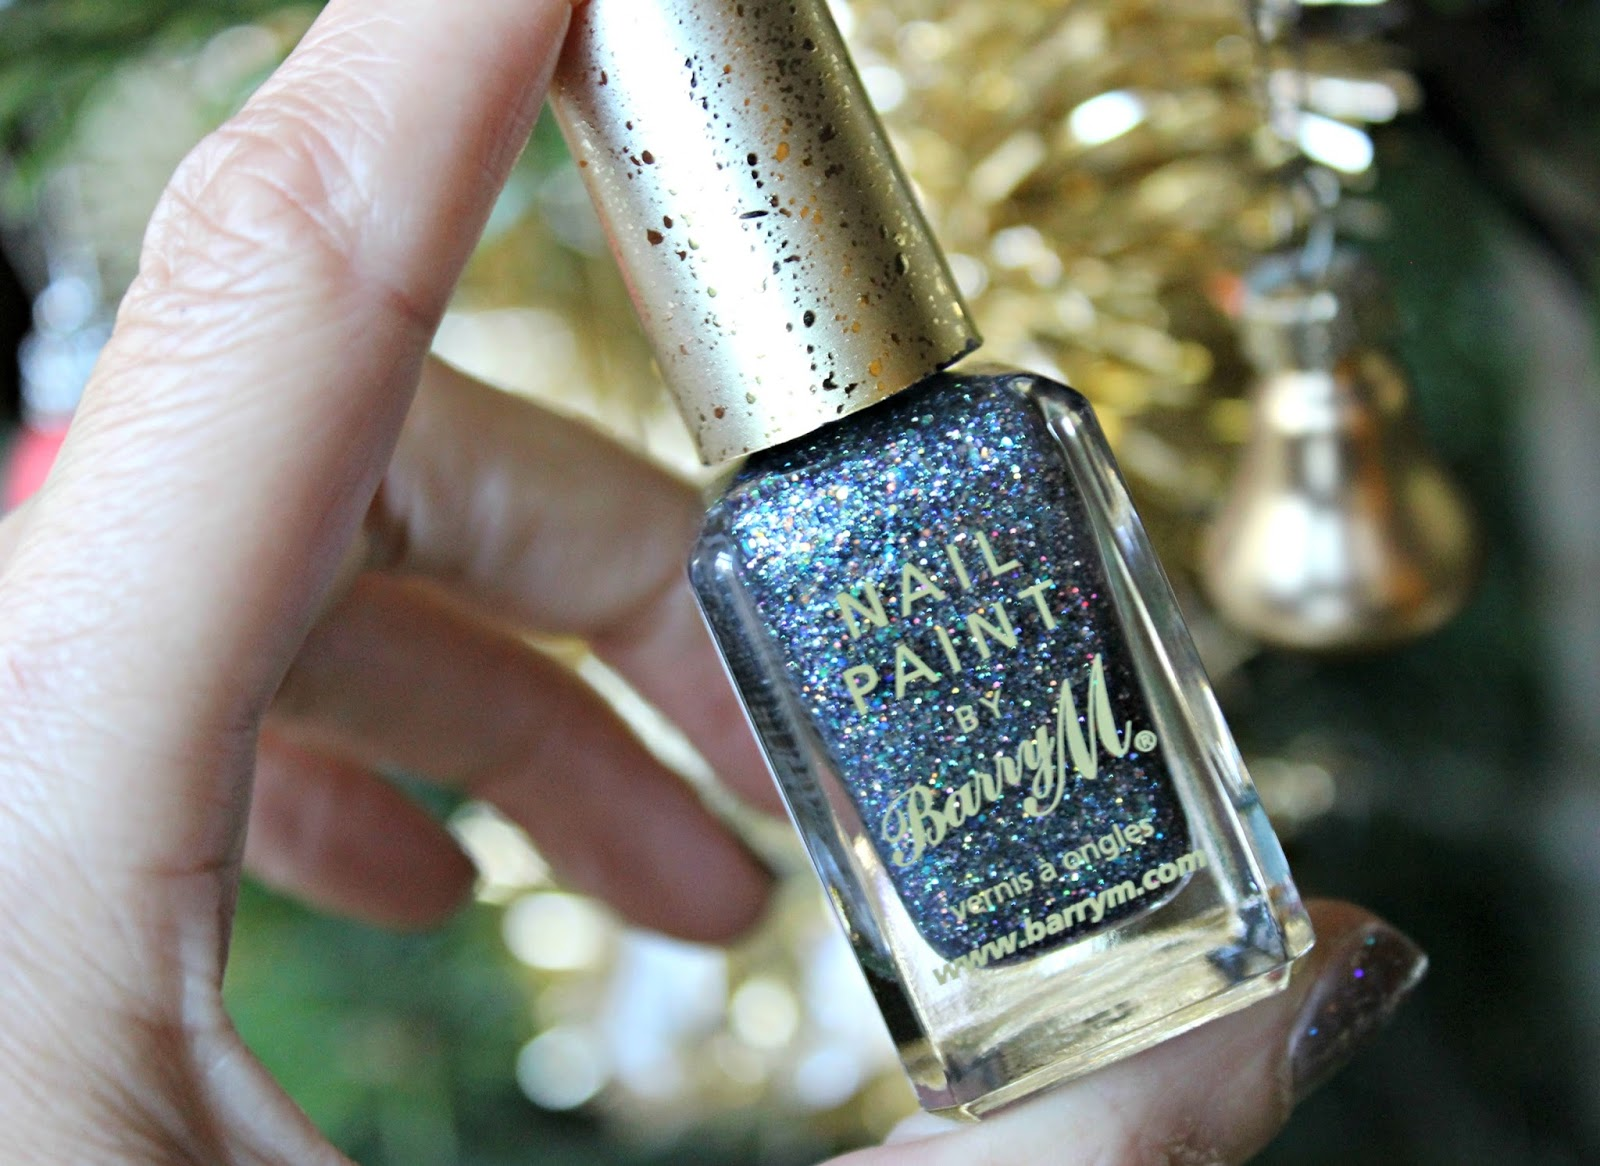 A picture of the Barry M Glitterati Nail Paint in Rockstar